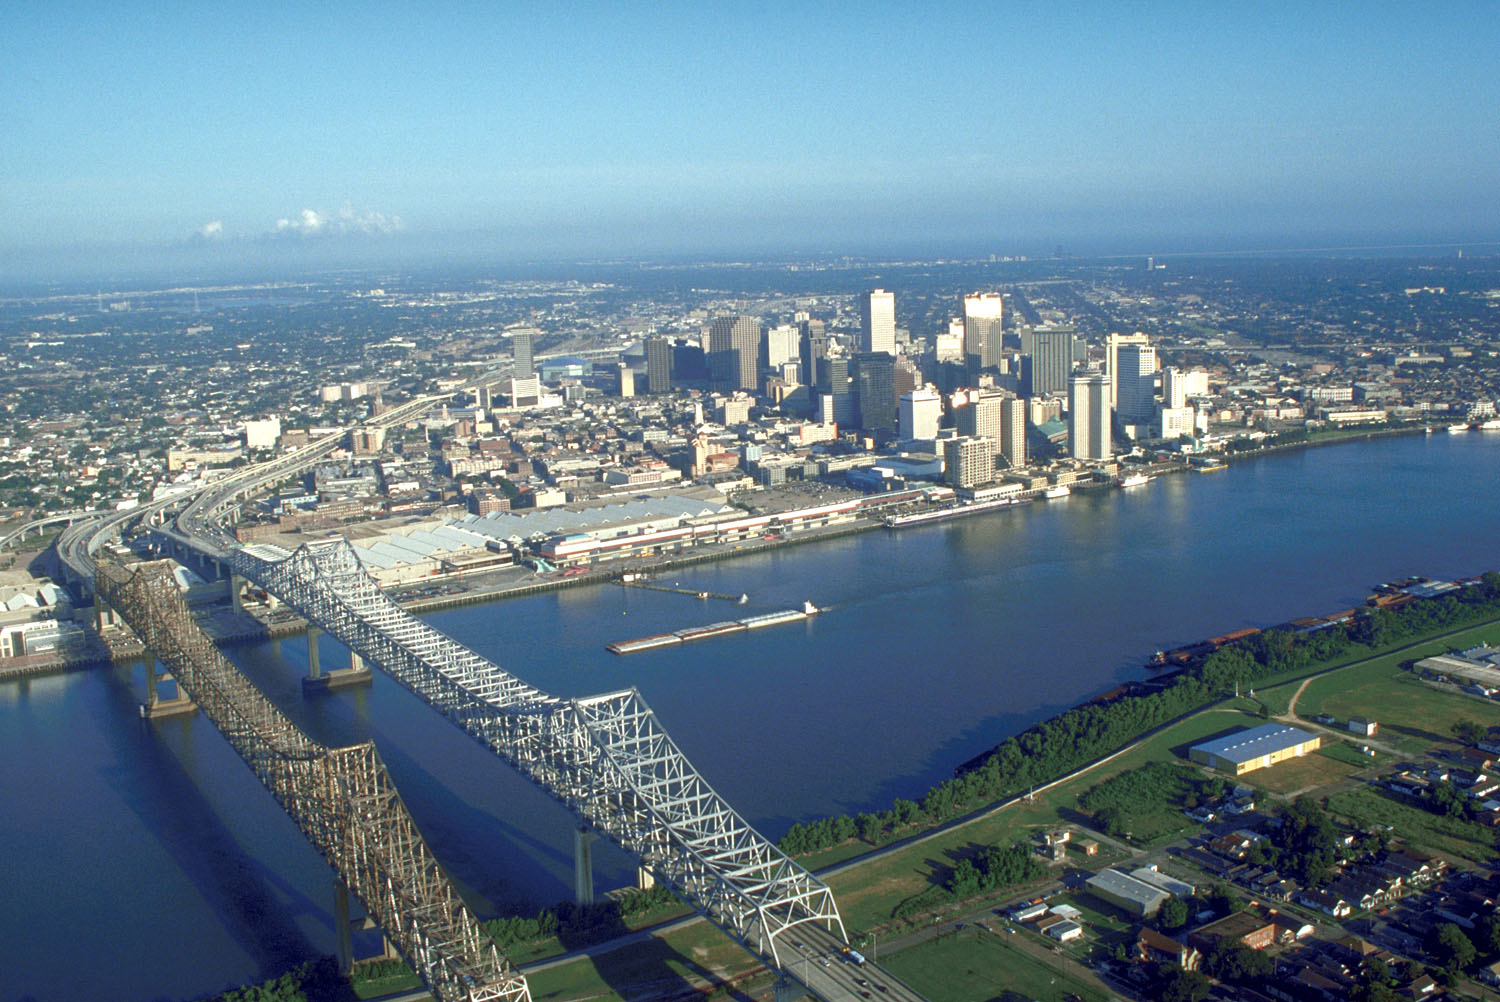 Httpwww Overlordsofchaos Comhtmlorigin Of The Word Jew Html: Plans To Help A Sinking New Orleans Left Its Own Residents